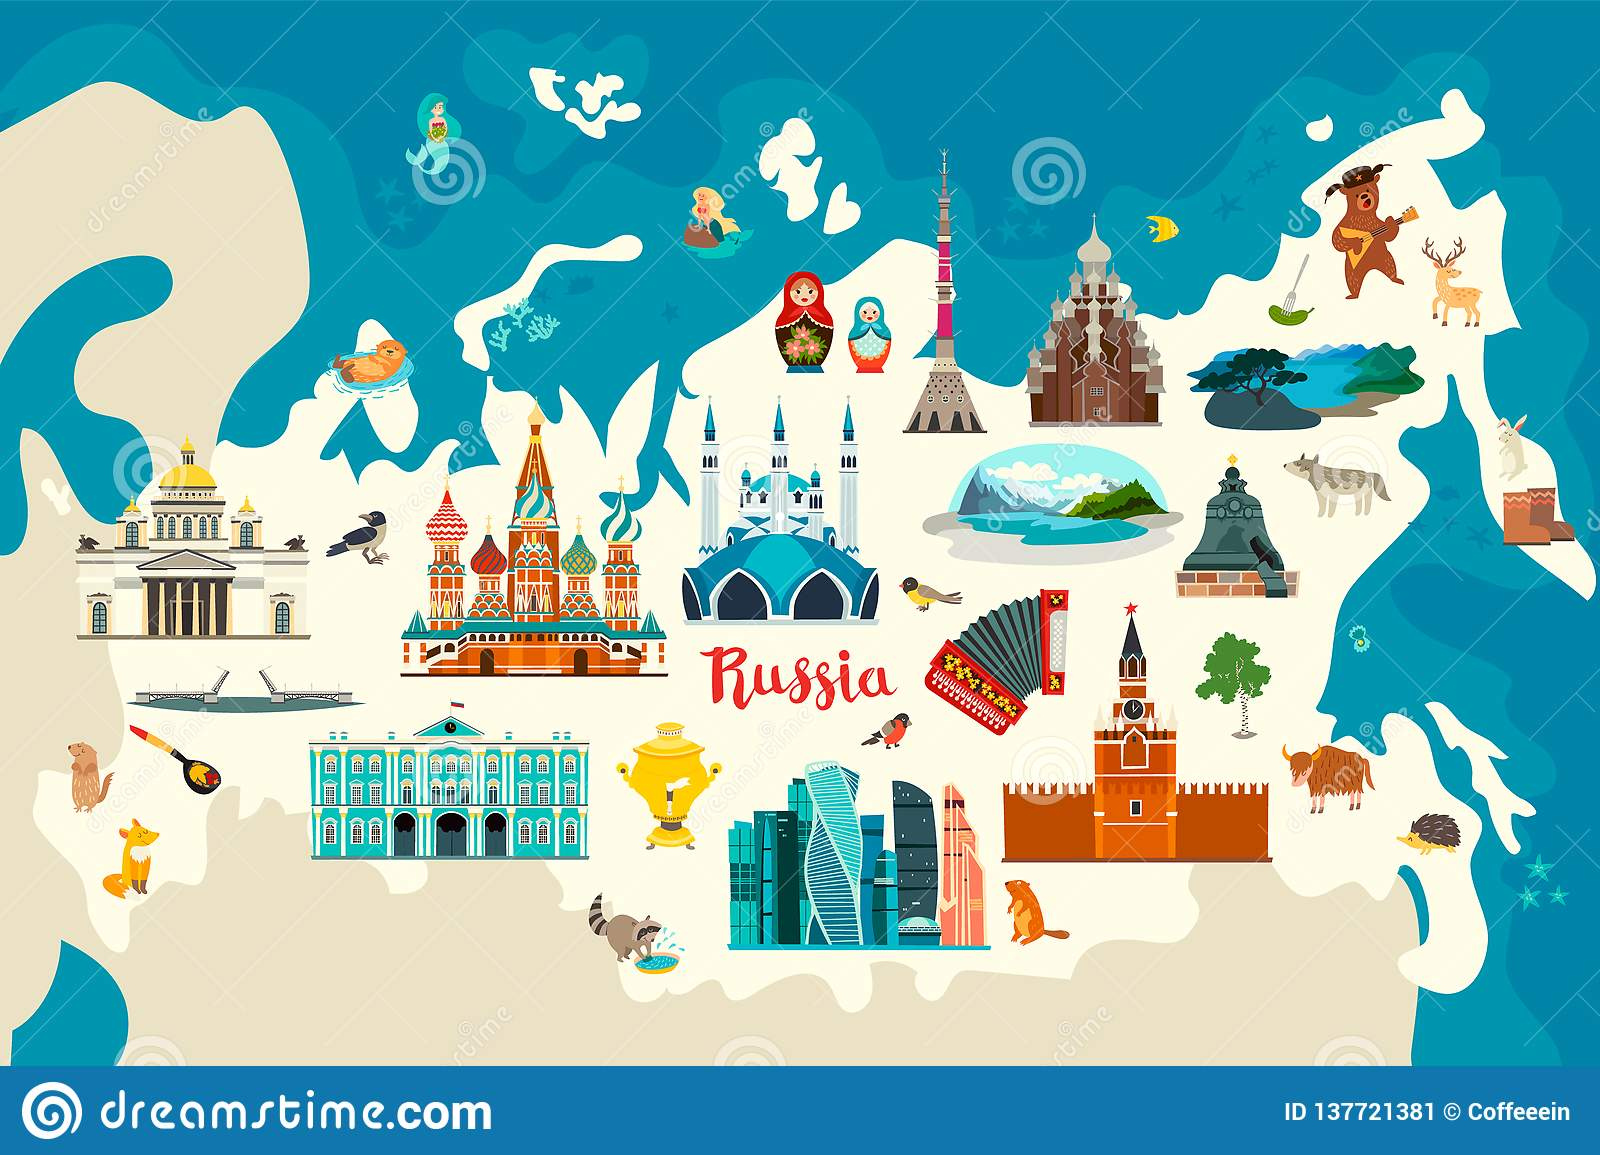 Russia vector map. Children colorful poster